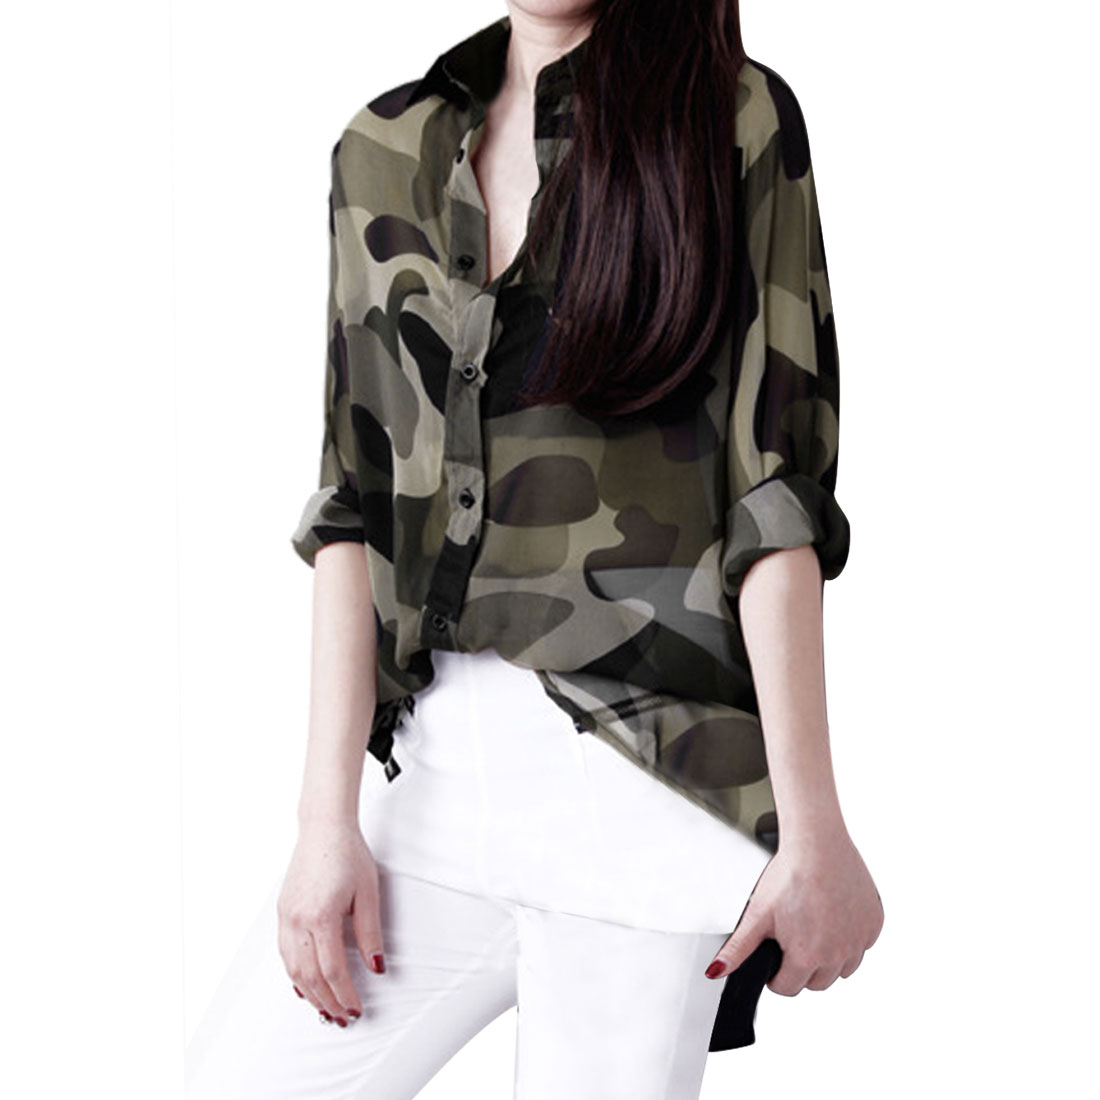 Sheer Camouflage Blouse 68